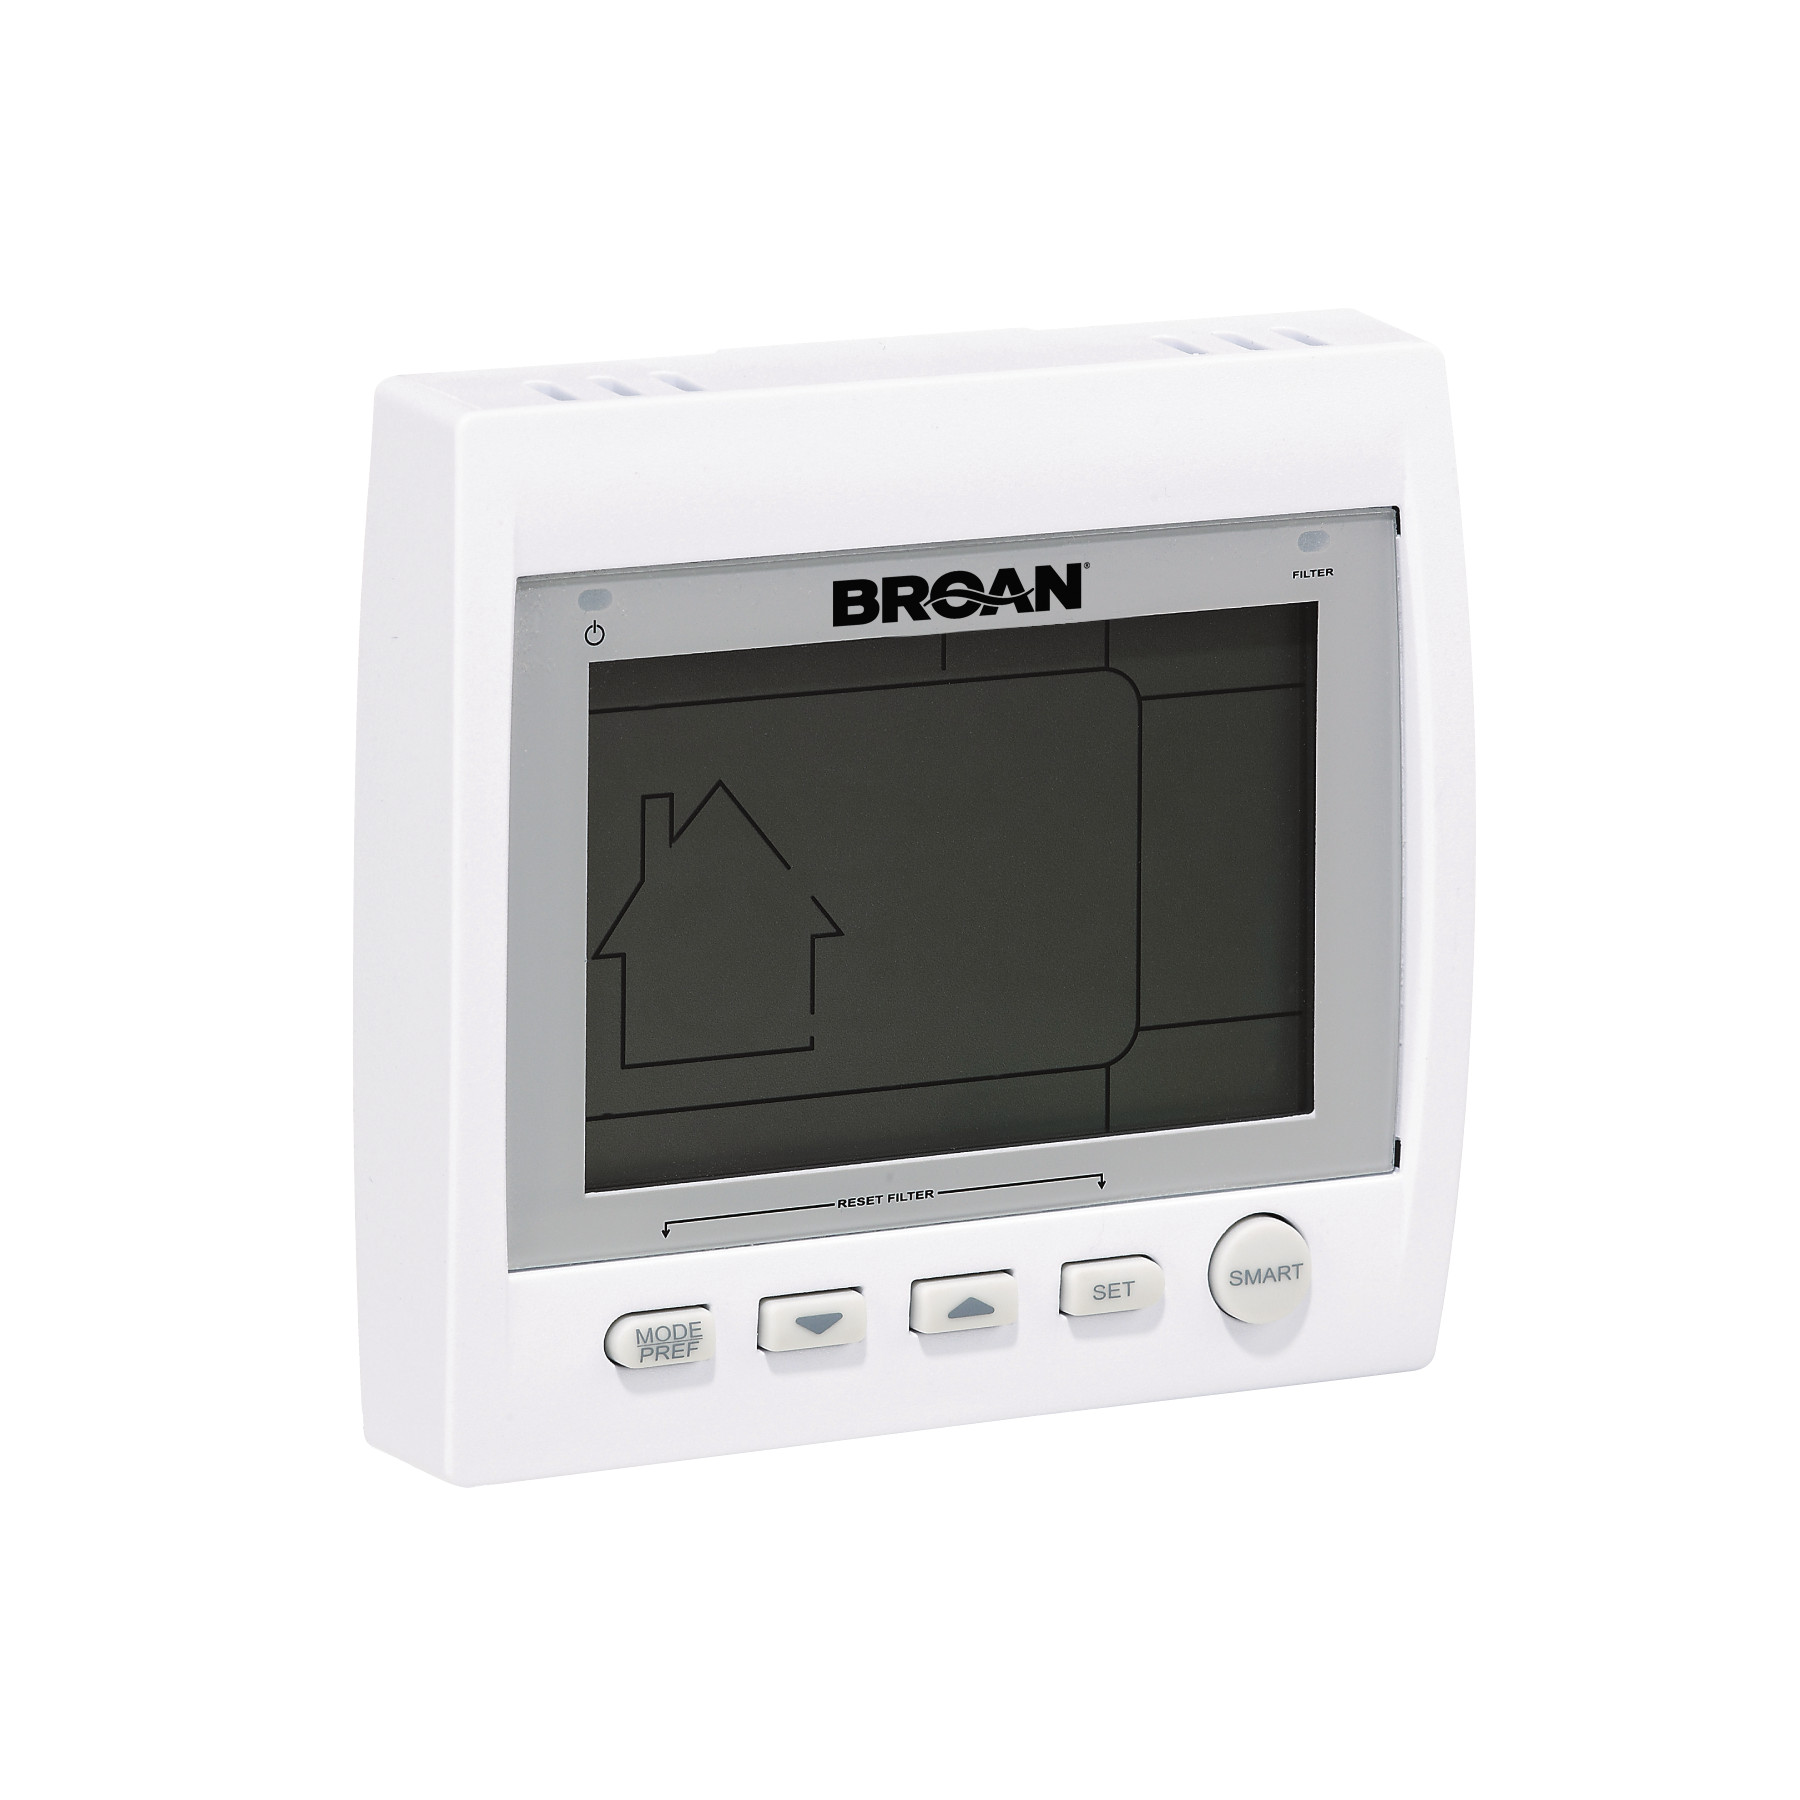 Broan® VT8W Programable Wall Control